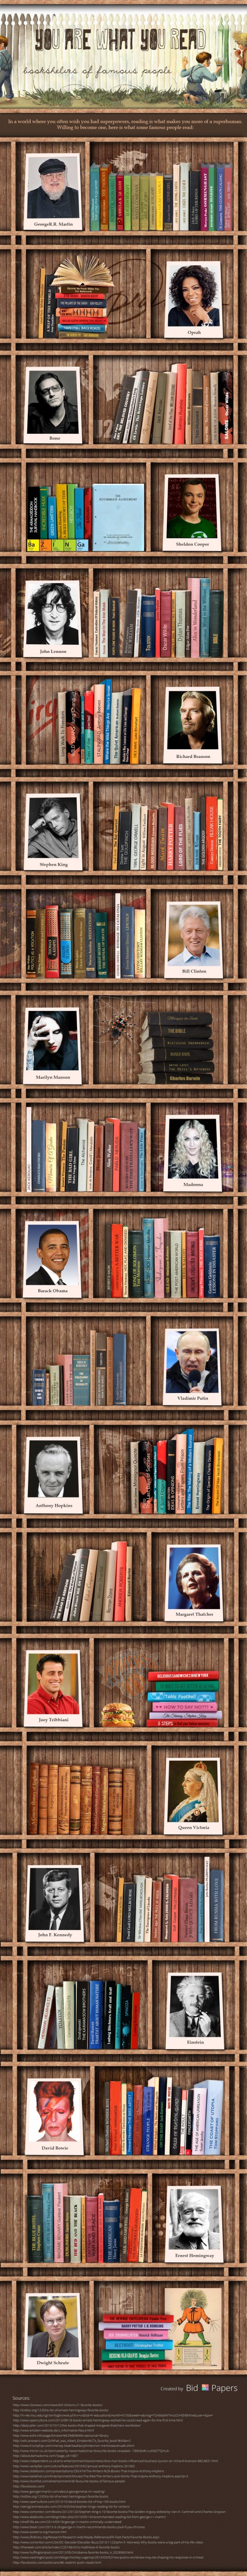 You Are What You Read: Bookshelves of Famous People